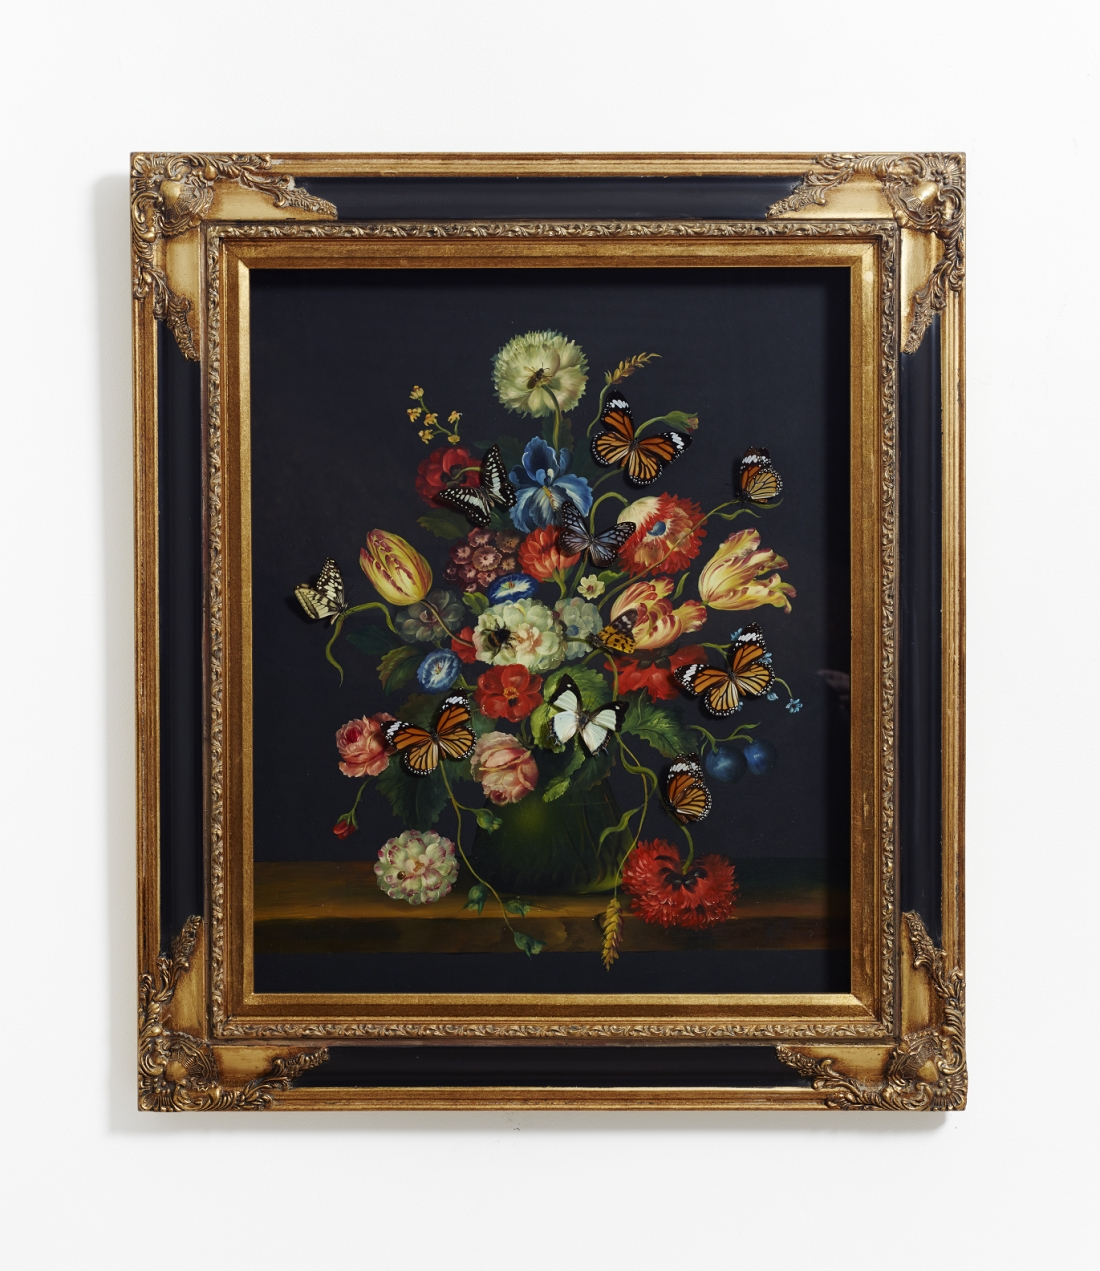 Nancy Fouts, Still life + real Life, Painting with butterflies, 47 x 41 x 5 cm (1)